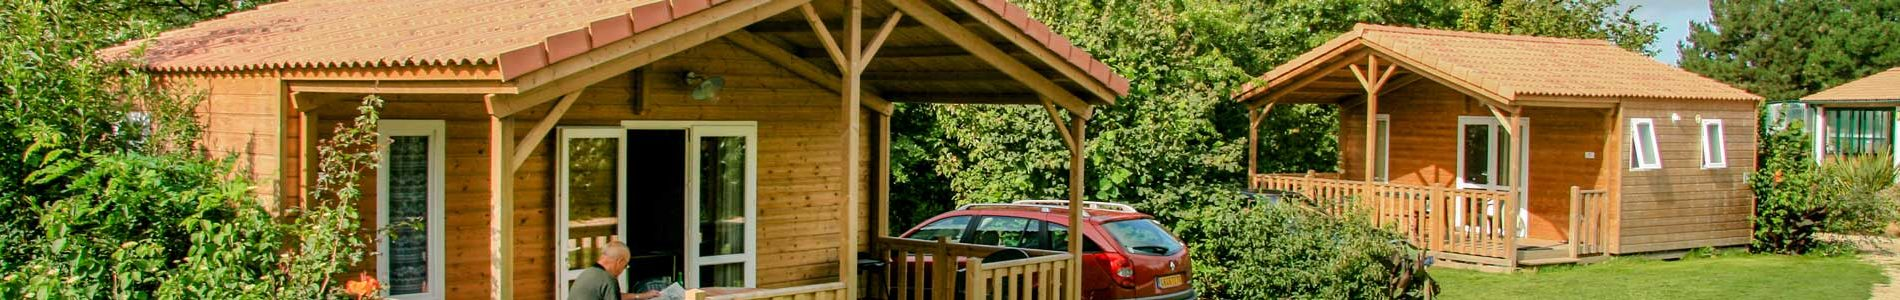 location chalet prestige camping vendee